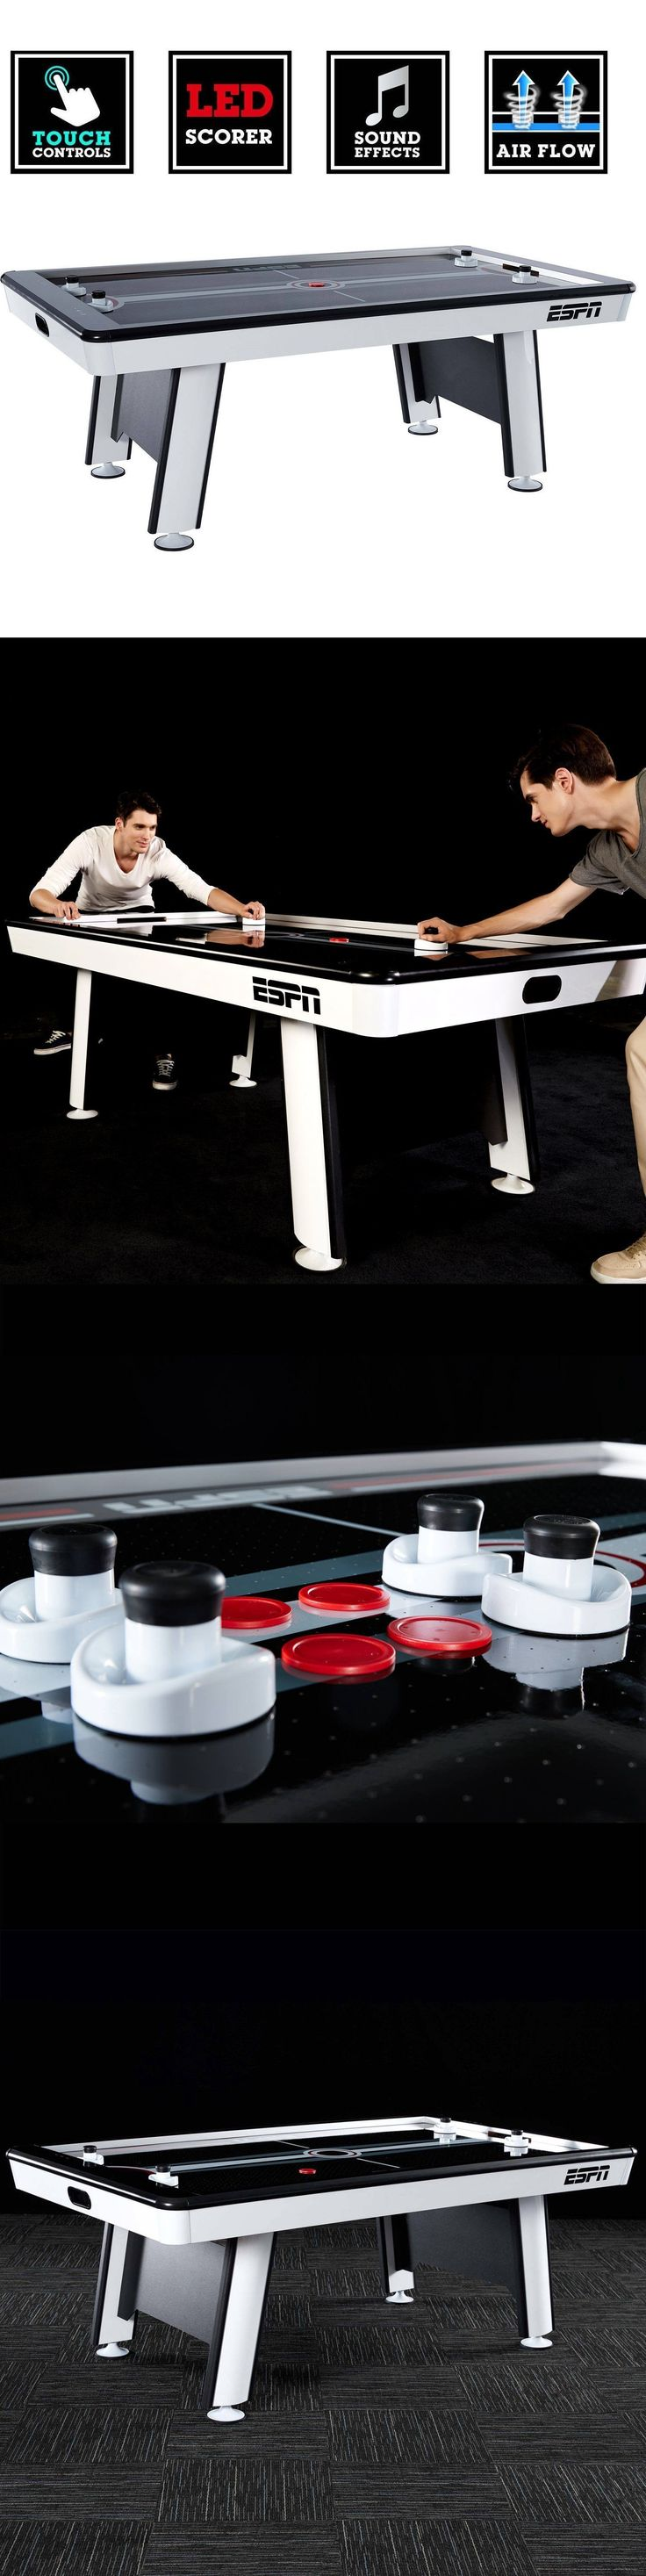 Air Hockey 36275: Air Hockey Table Set 84 Full-Size Gametable Sports Activity Scoring Game Room -> BUY IT NOW ONLY: $447.22 on eBay!